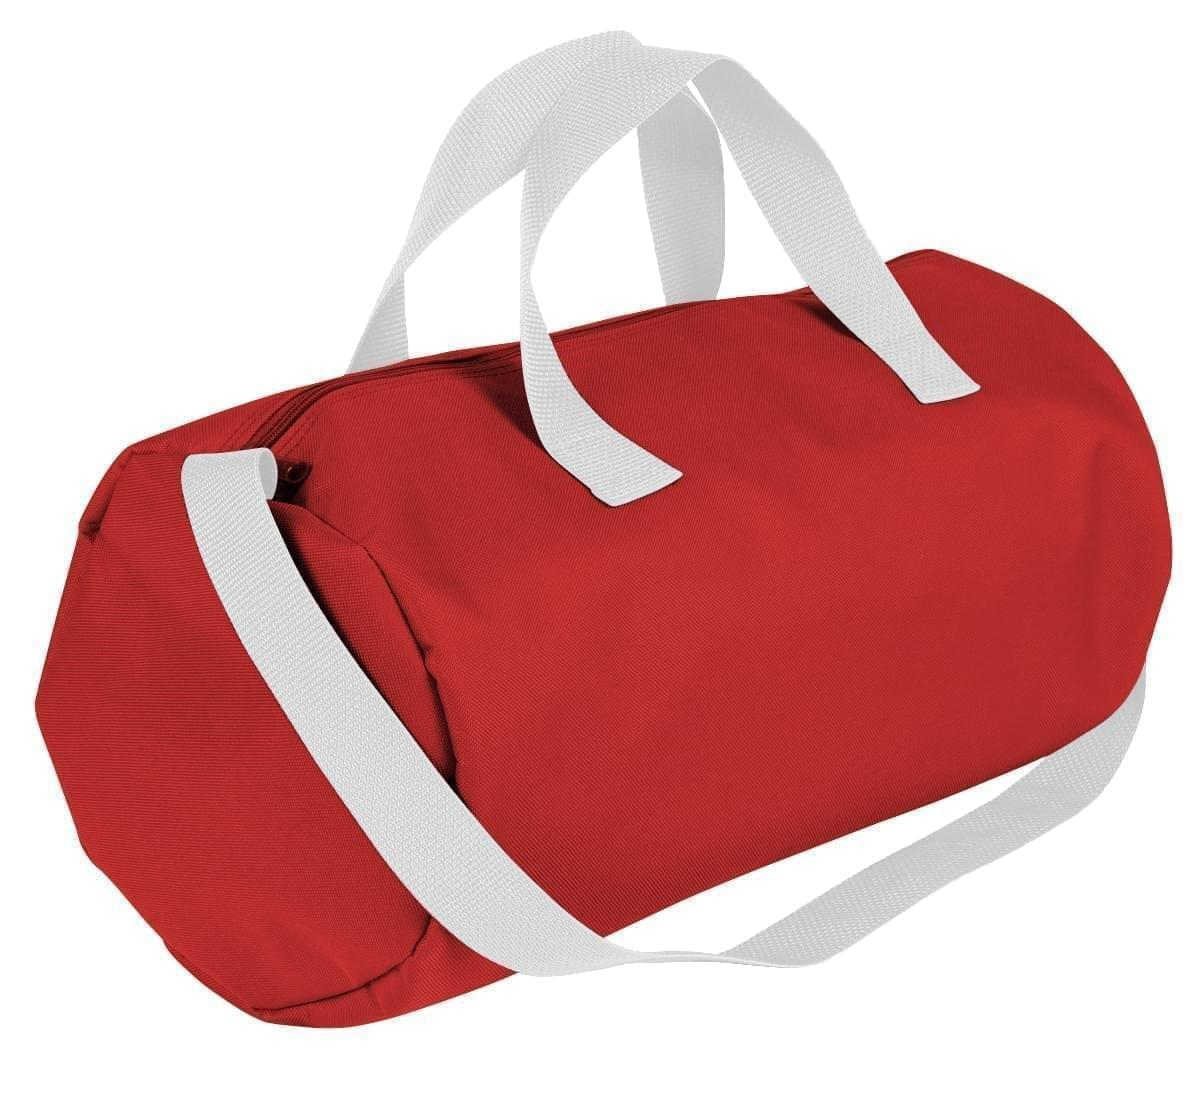 USA Made Nylon Poly Gym Roll Bags, Red-White, ROCX31AAZ4